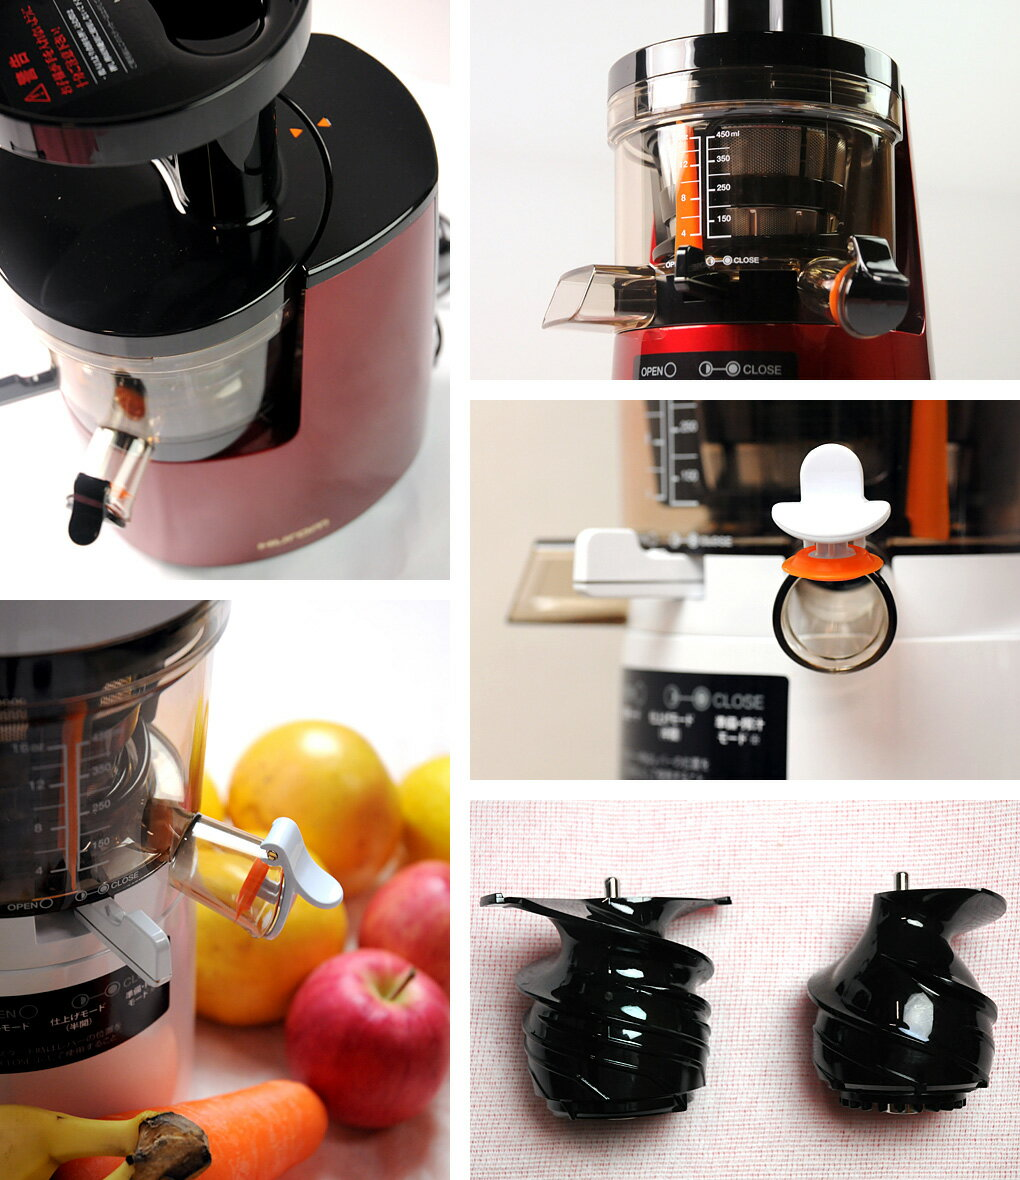 Hurom Slow Juicer Romania : Smart Kitchen Rakuten Global Market: HUROM slow juicer H2H and Hulme